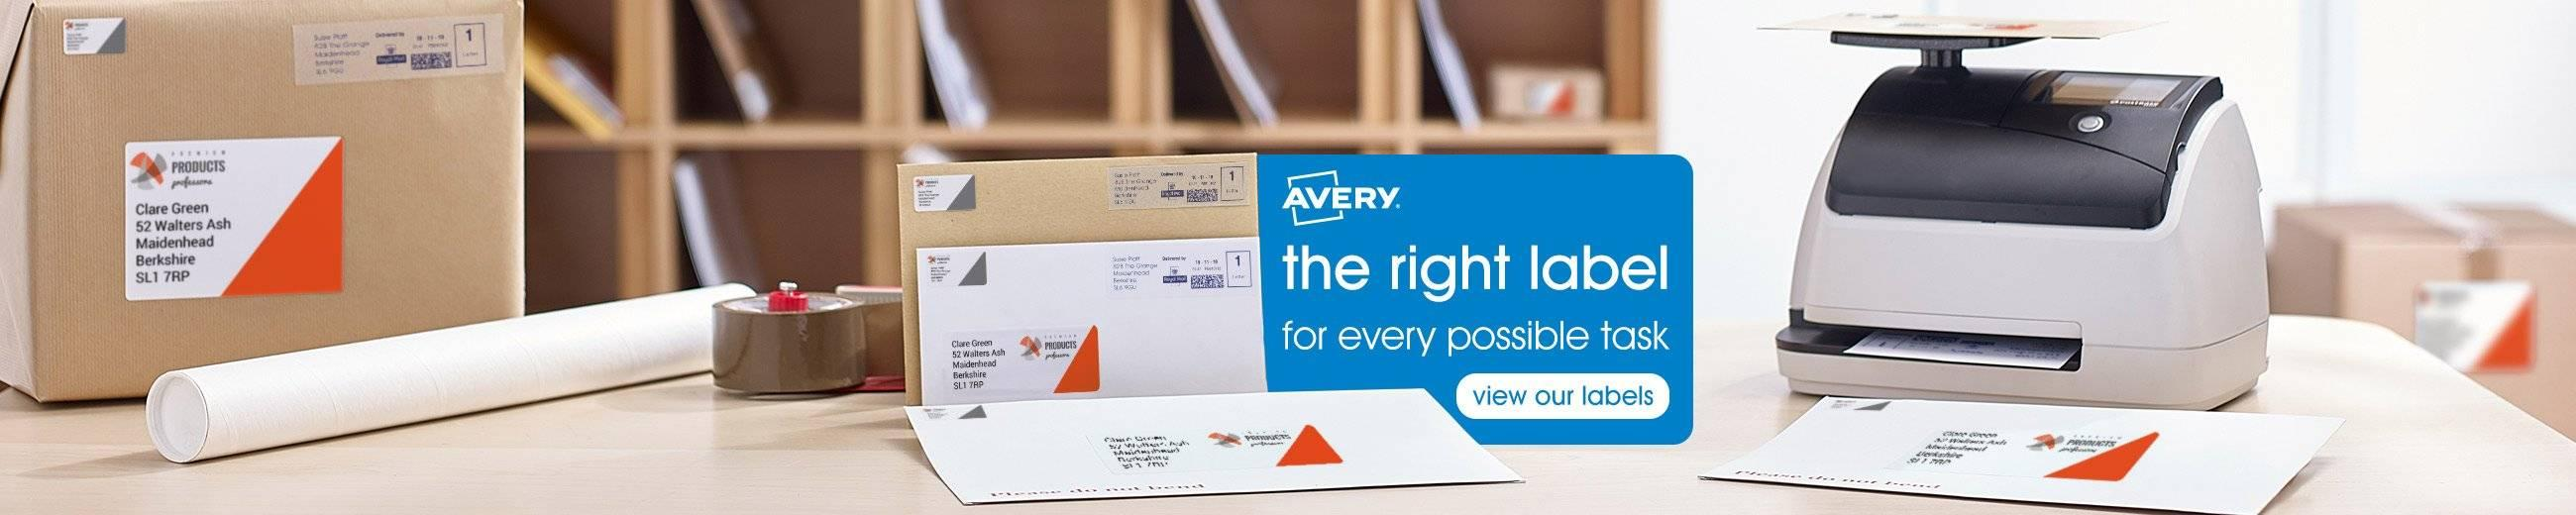 Avery Labels Printing Template L7177